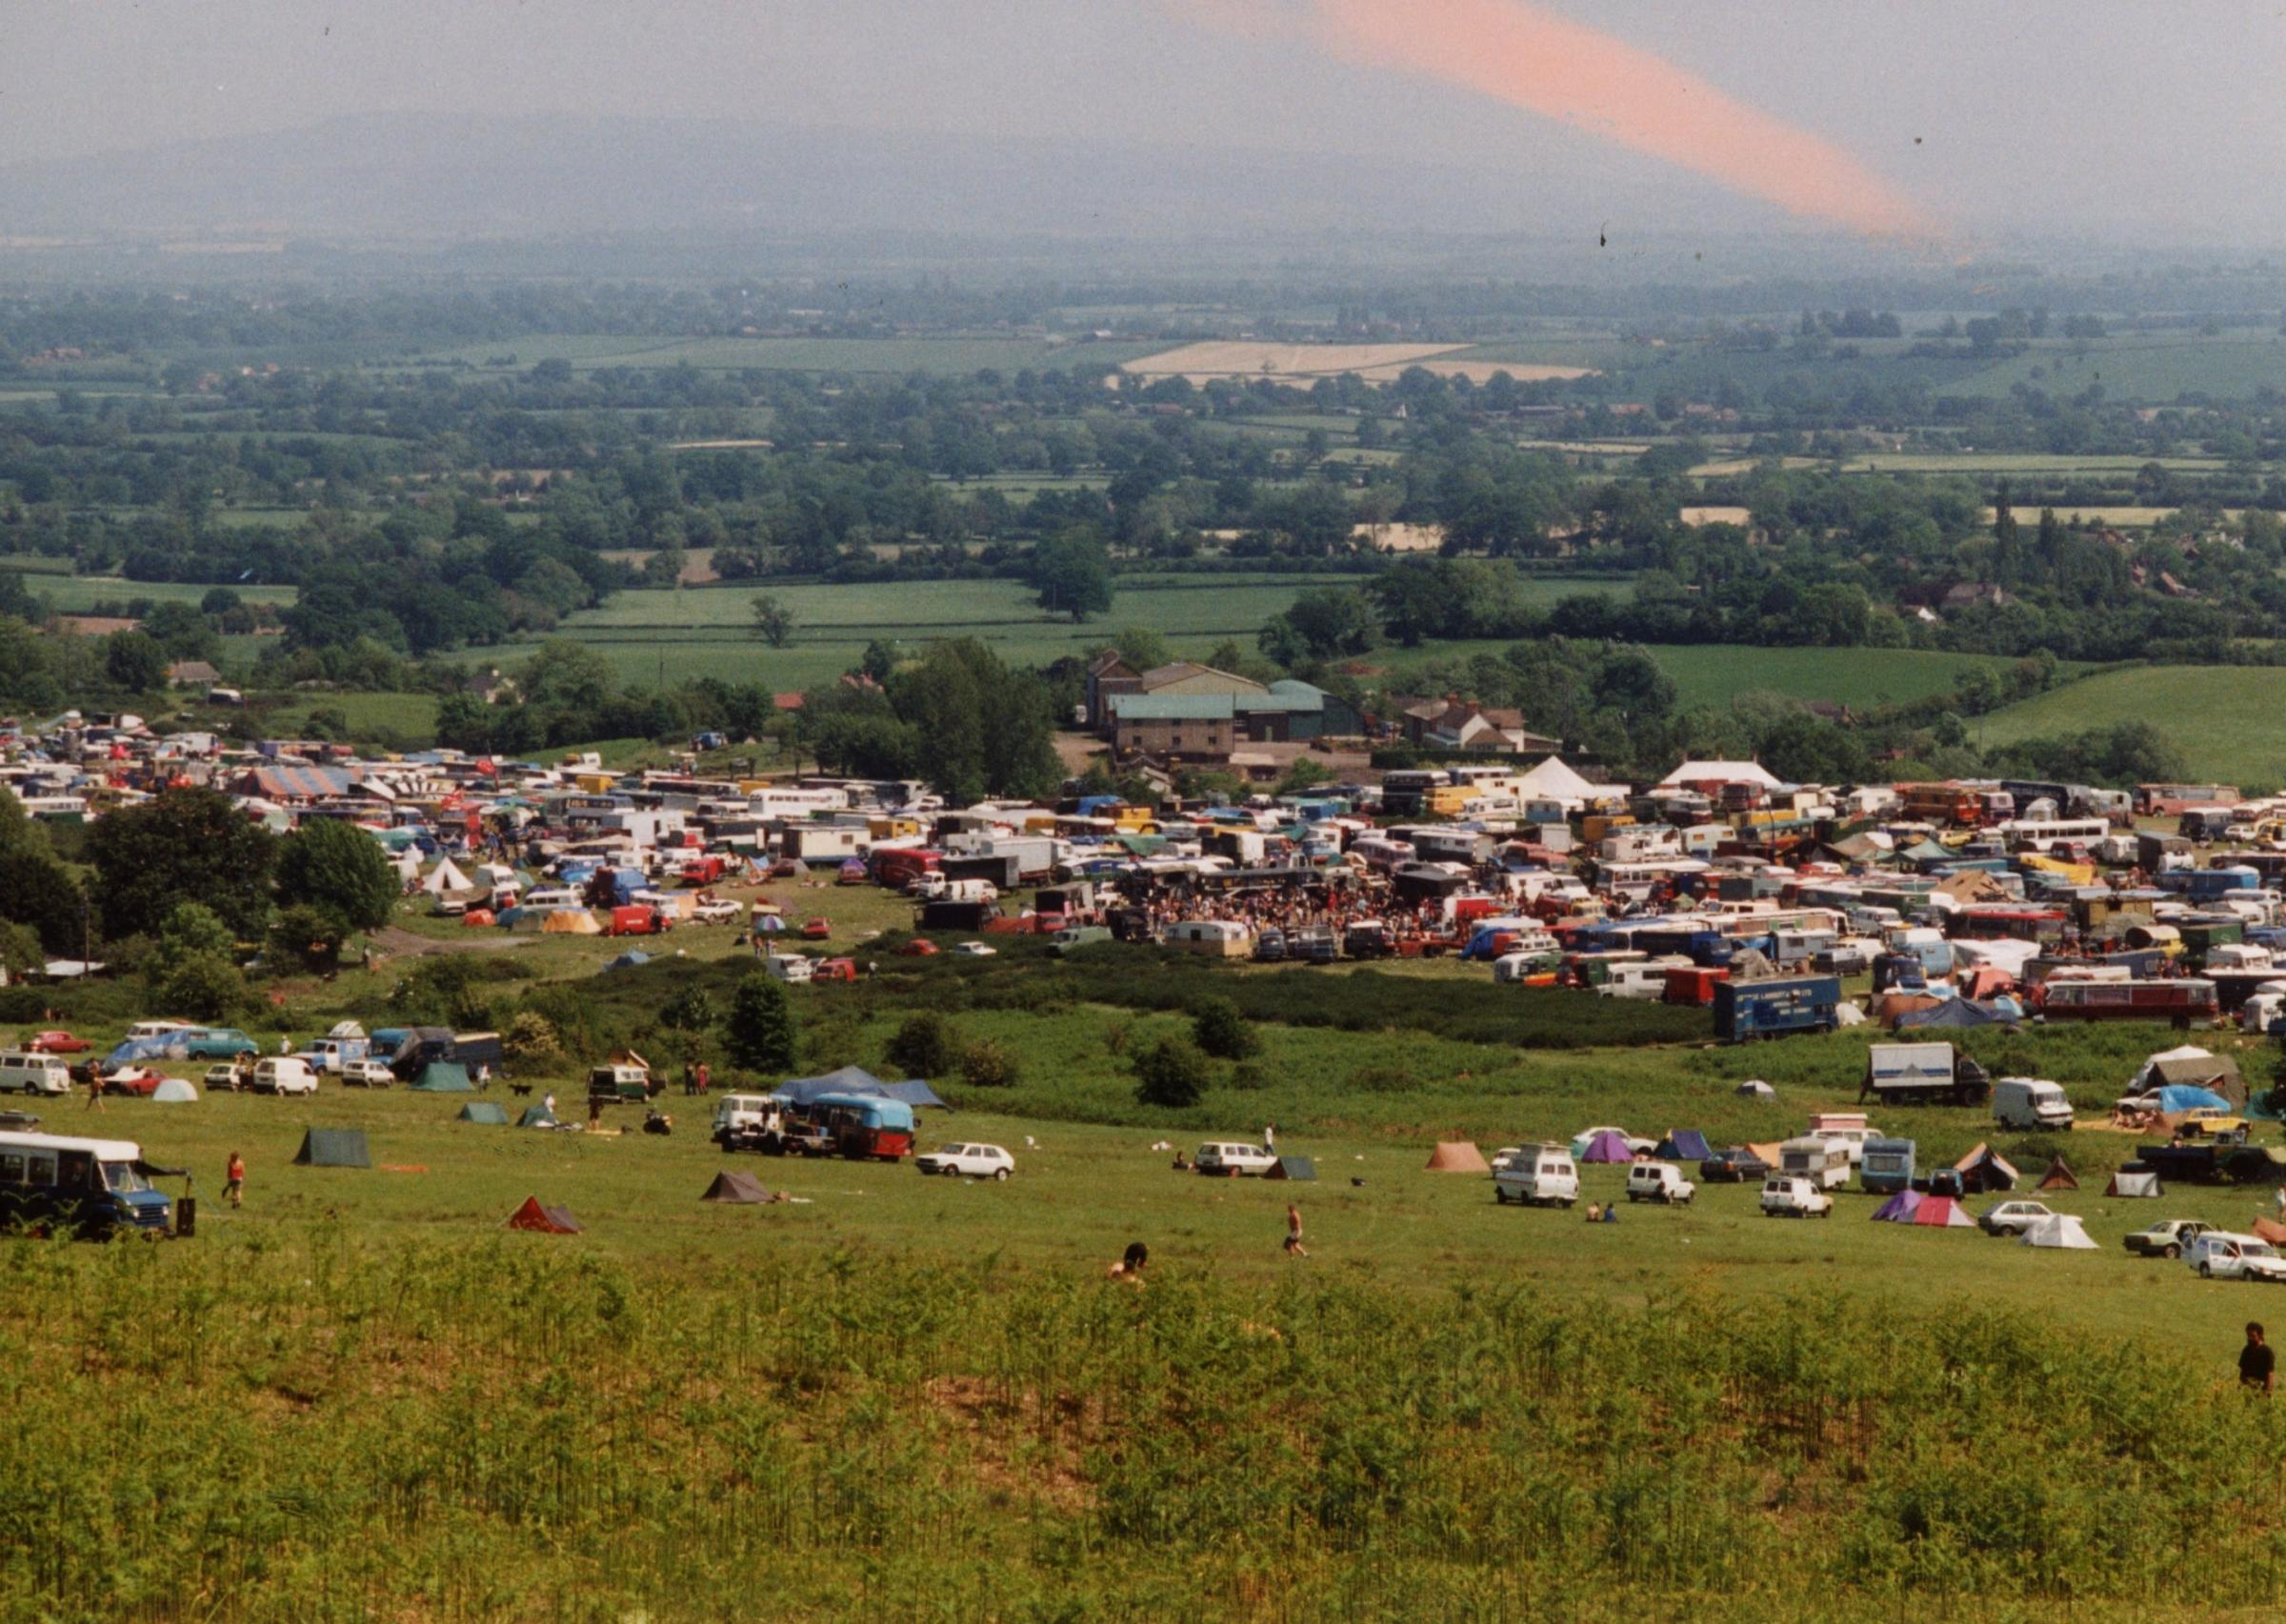 The Castlemorton Common Festival kicked off on this day in